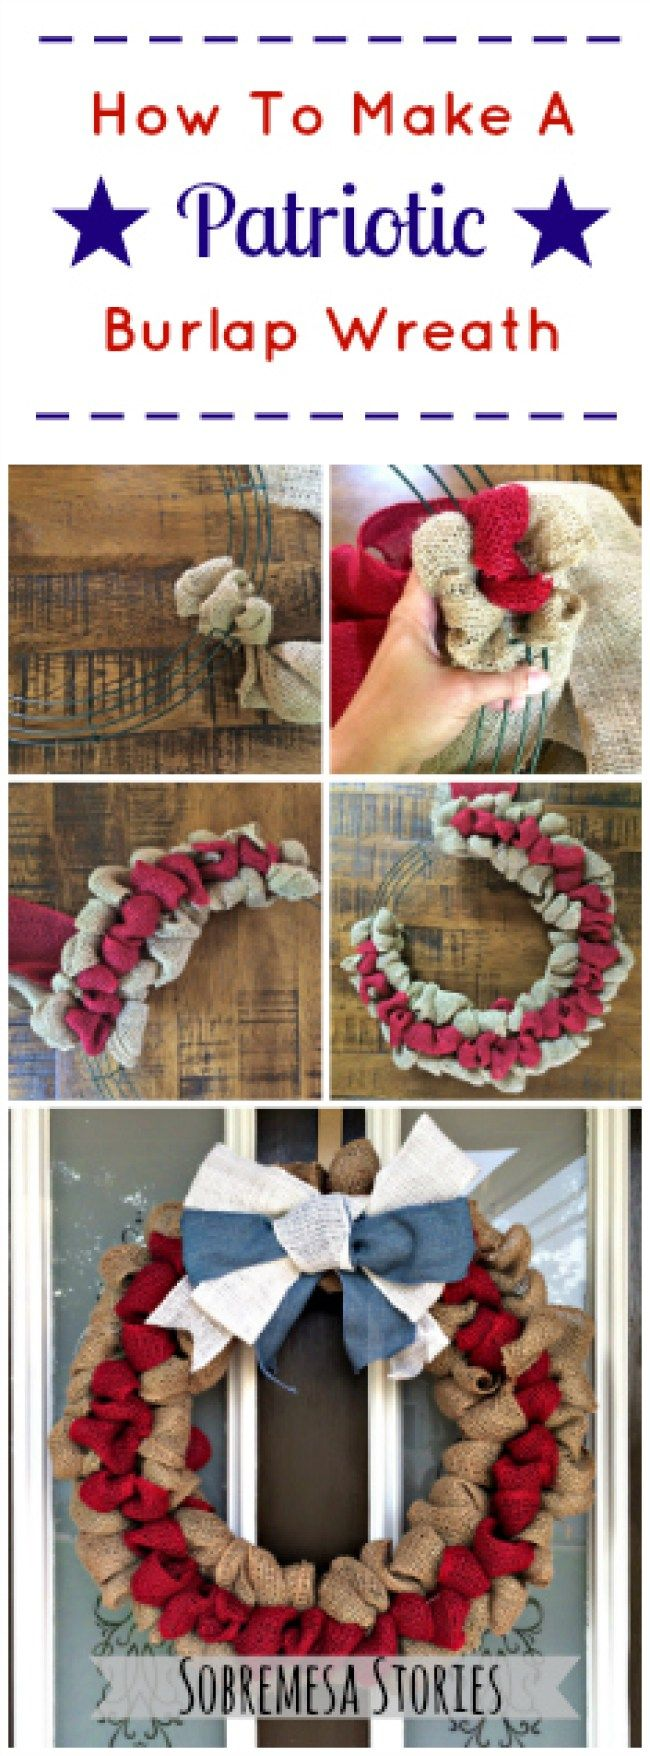 How To Make A Patriotic Burlap Wreath - Sobremesa Stories